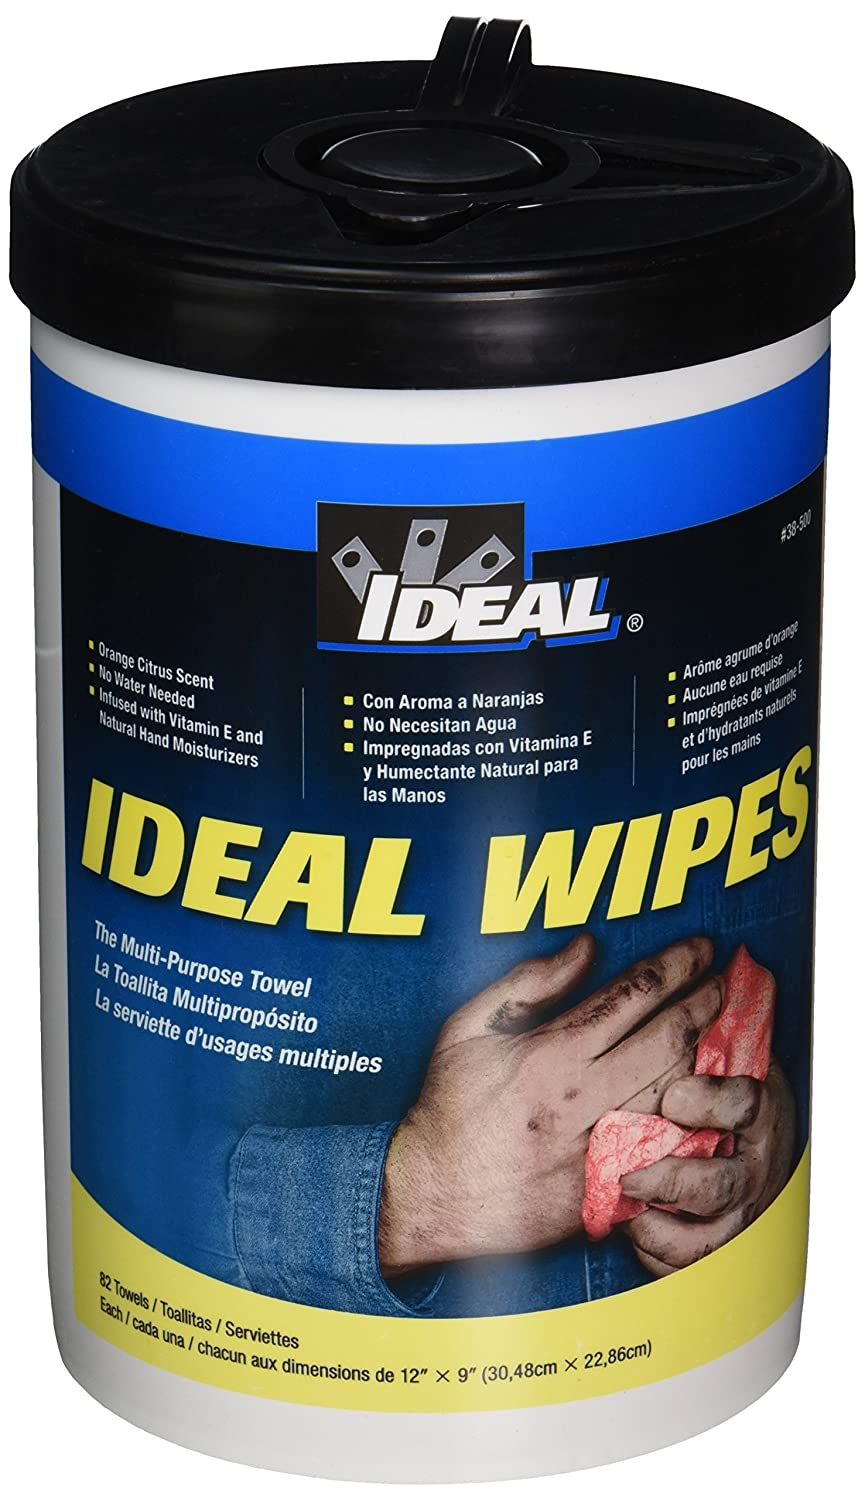 Amazon.com: Ideal 38-500 Wipes Multi-Purpose Towel, Pack of 1: Home Improvement